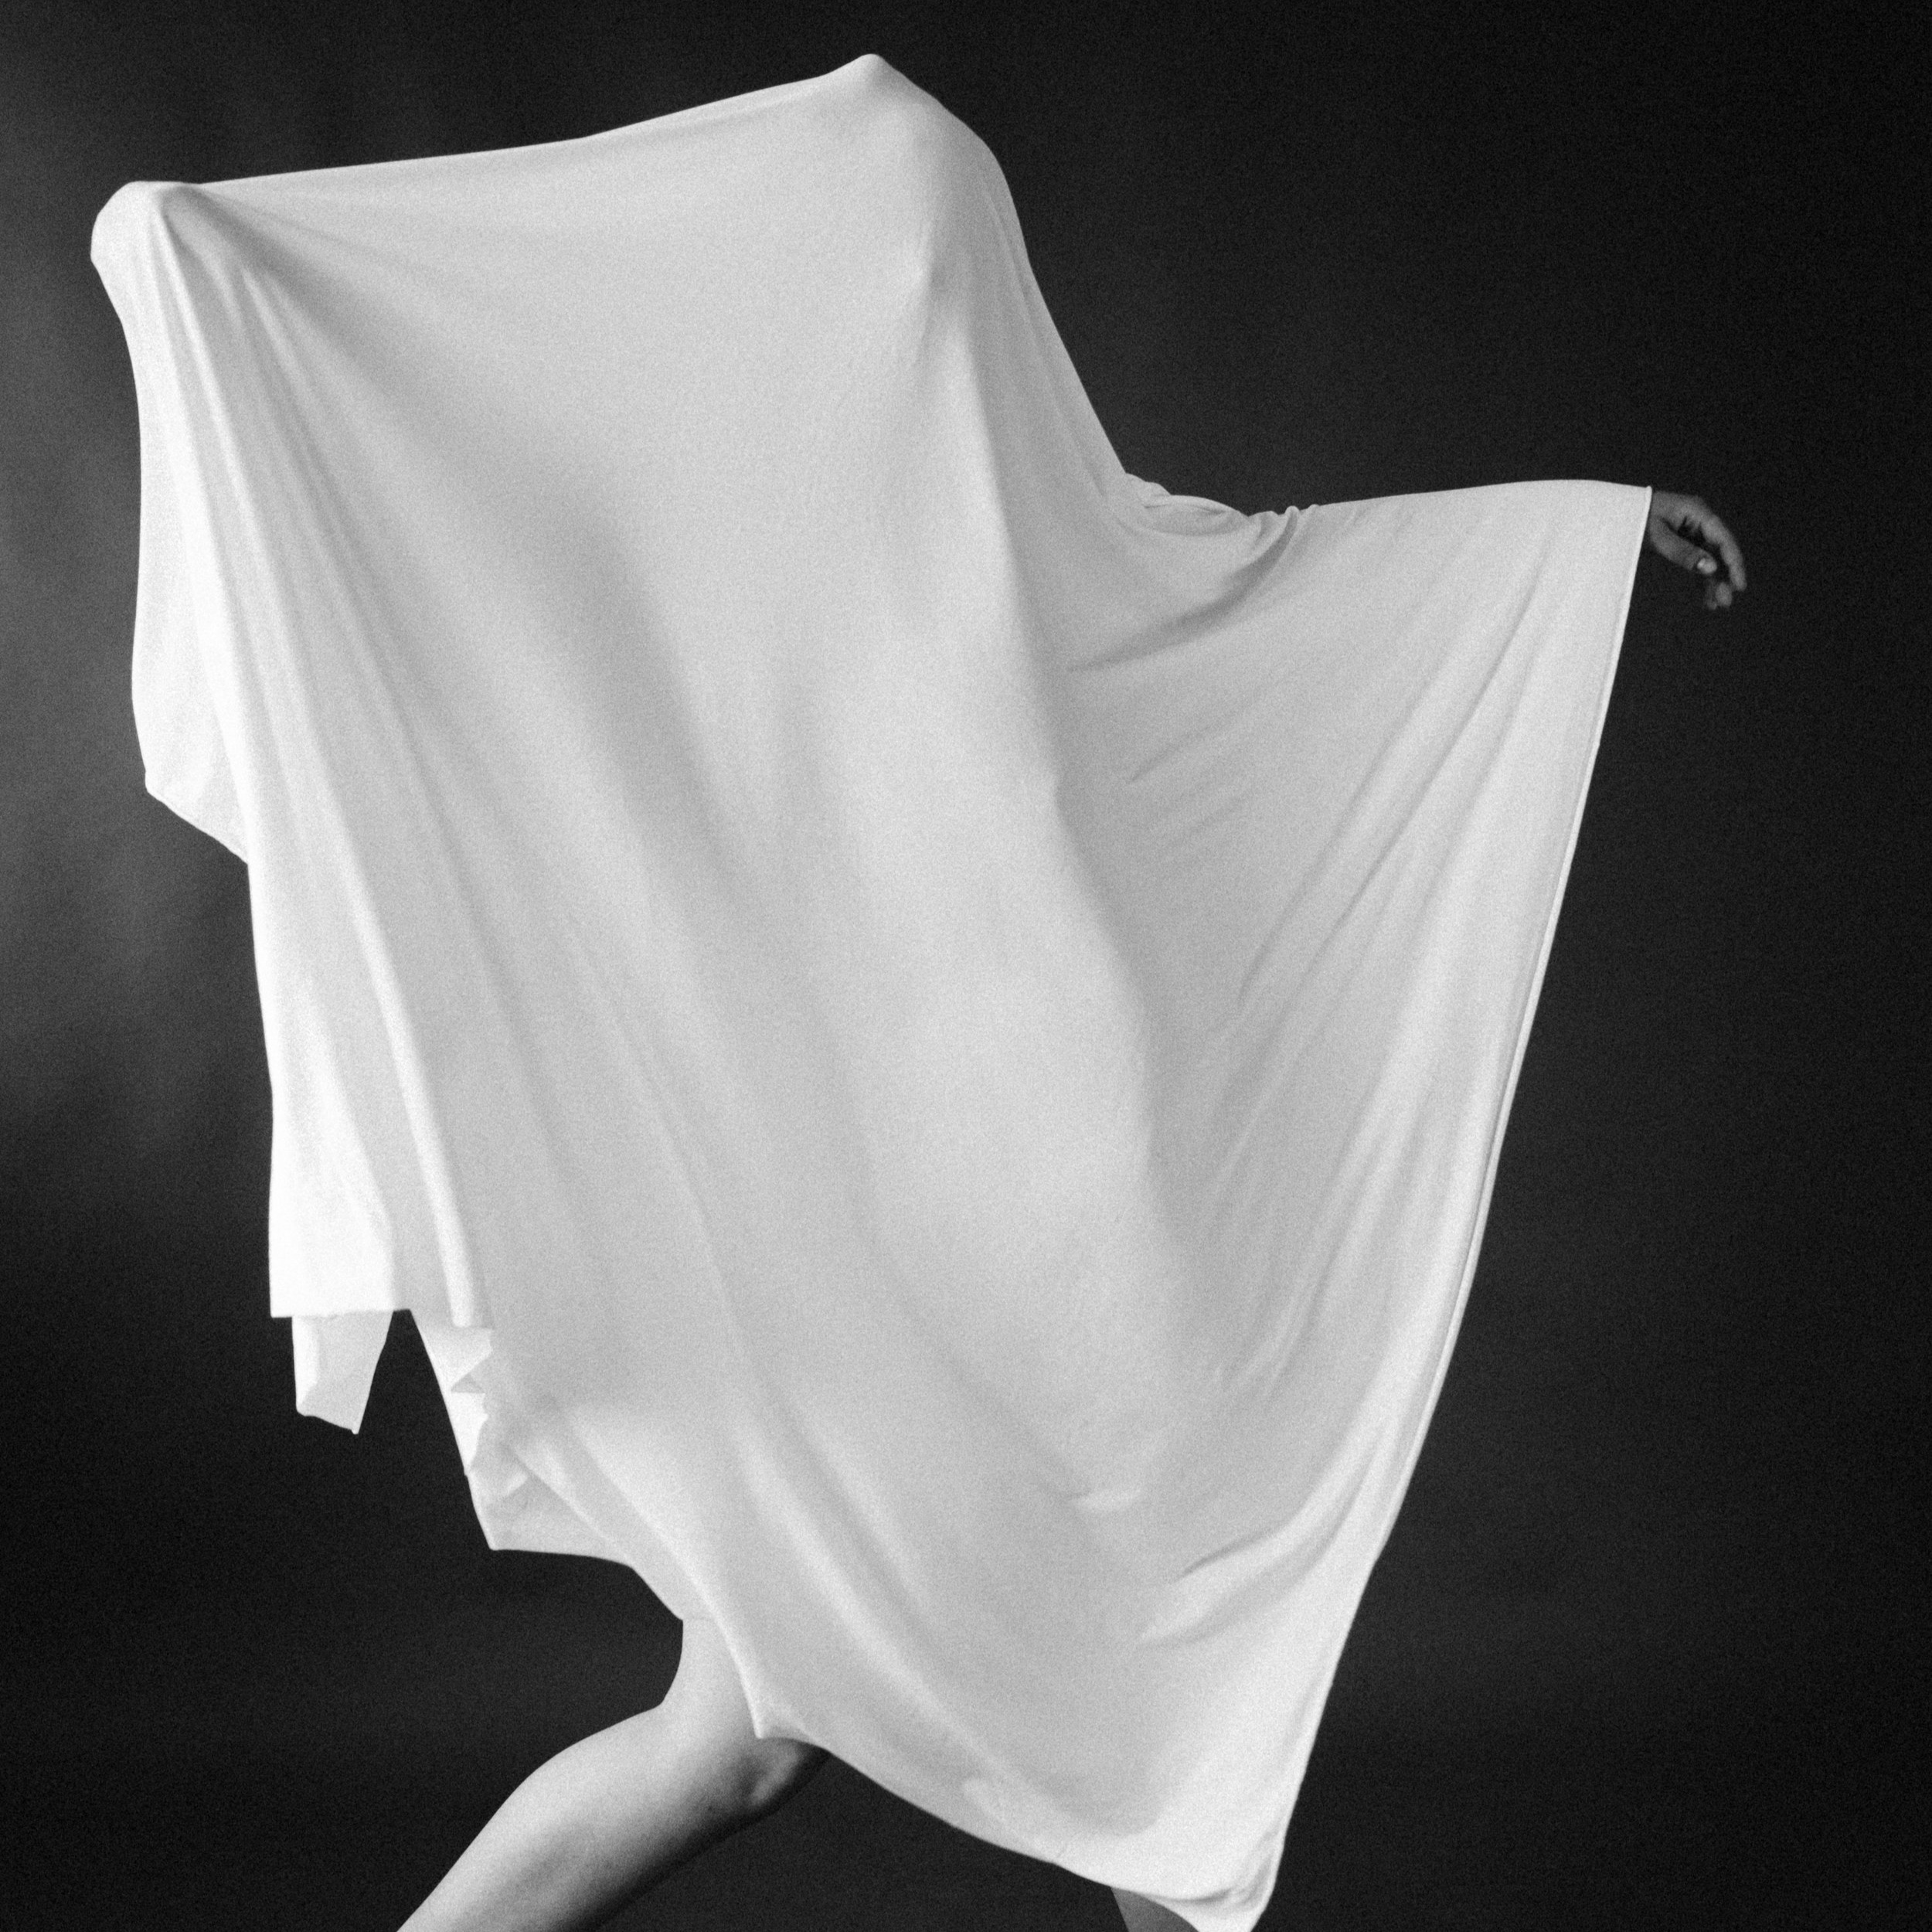 Dancing With a Ghost - a series of photographs with the dancer Paige Omara.- Spring 2019